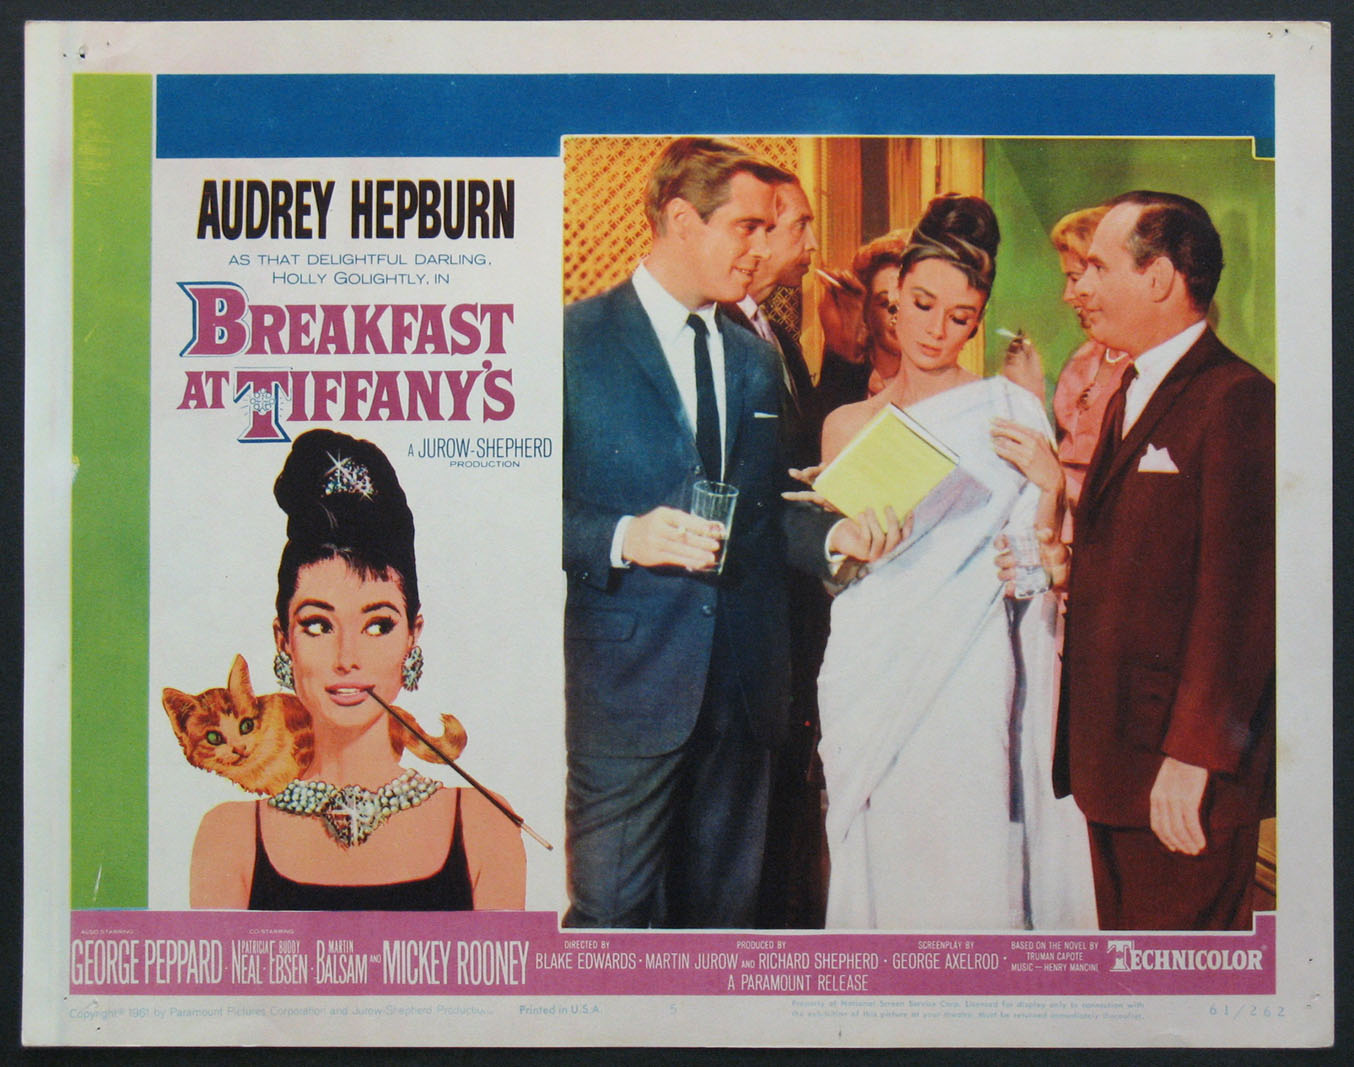 BREAKFAST AT TIFFANY'S (Breakfast at Tiffanys) @ FilmPosters.com